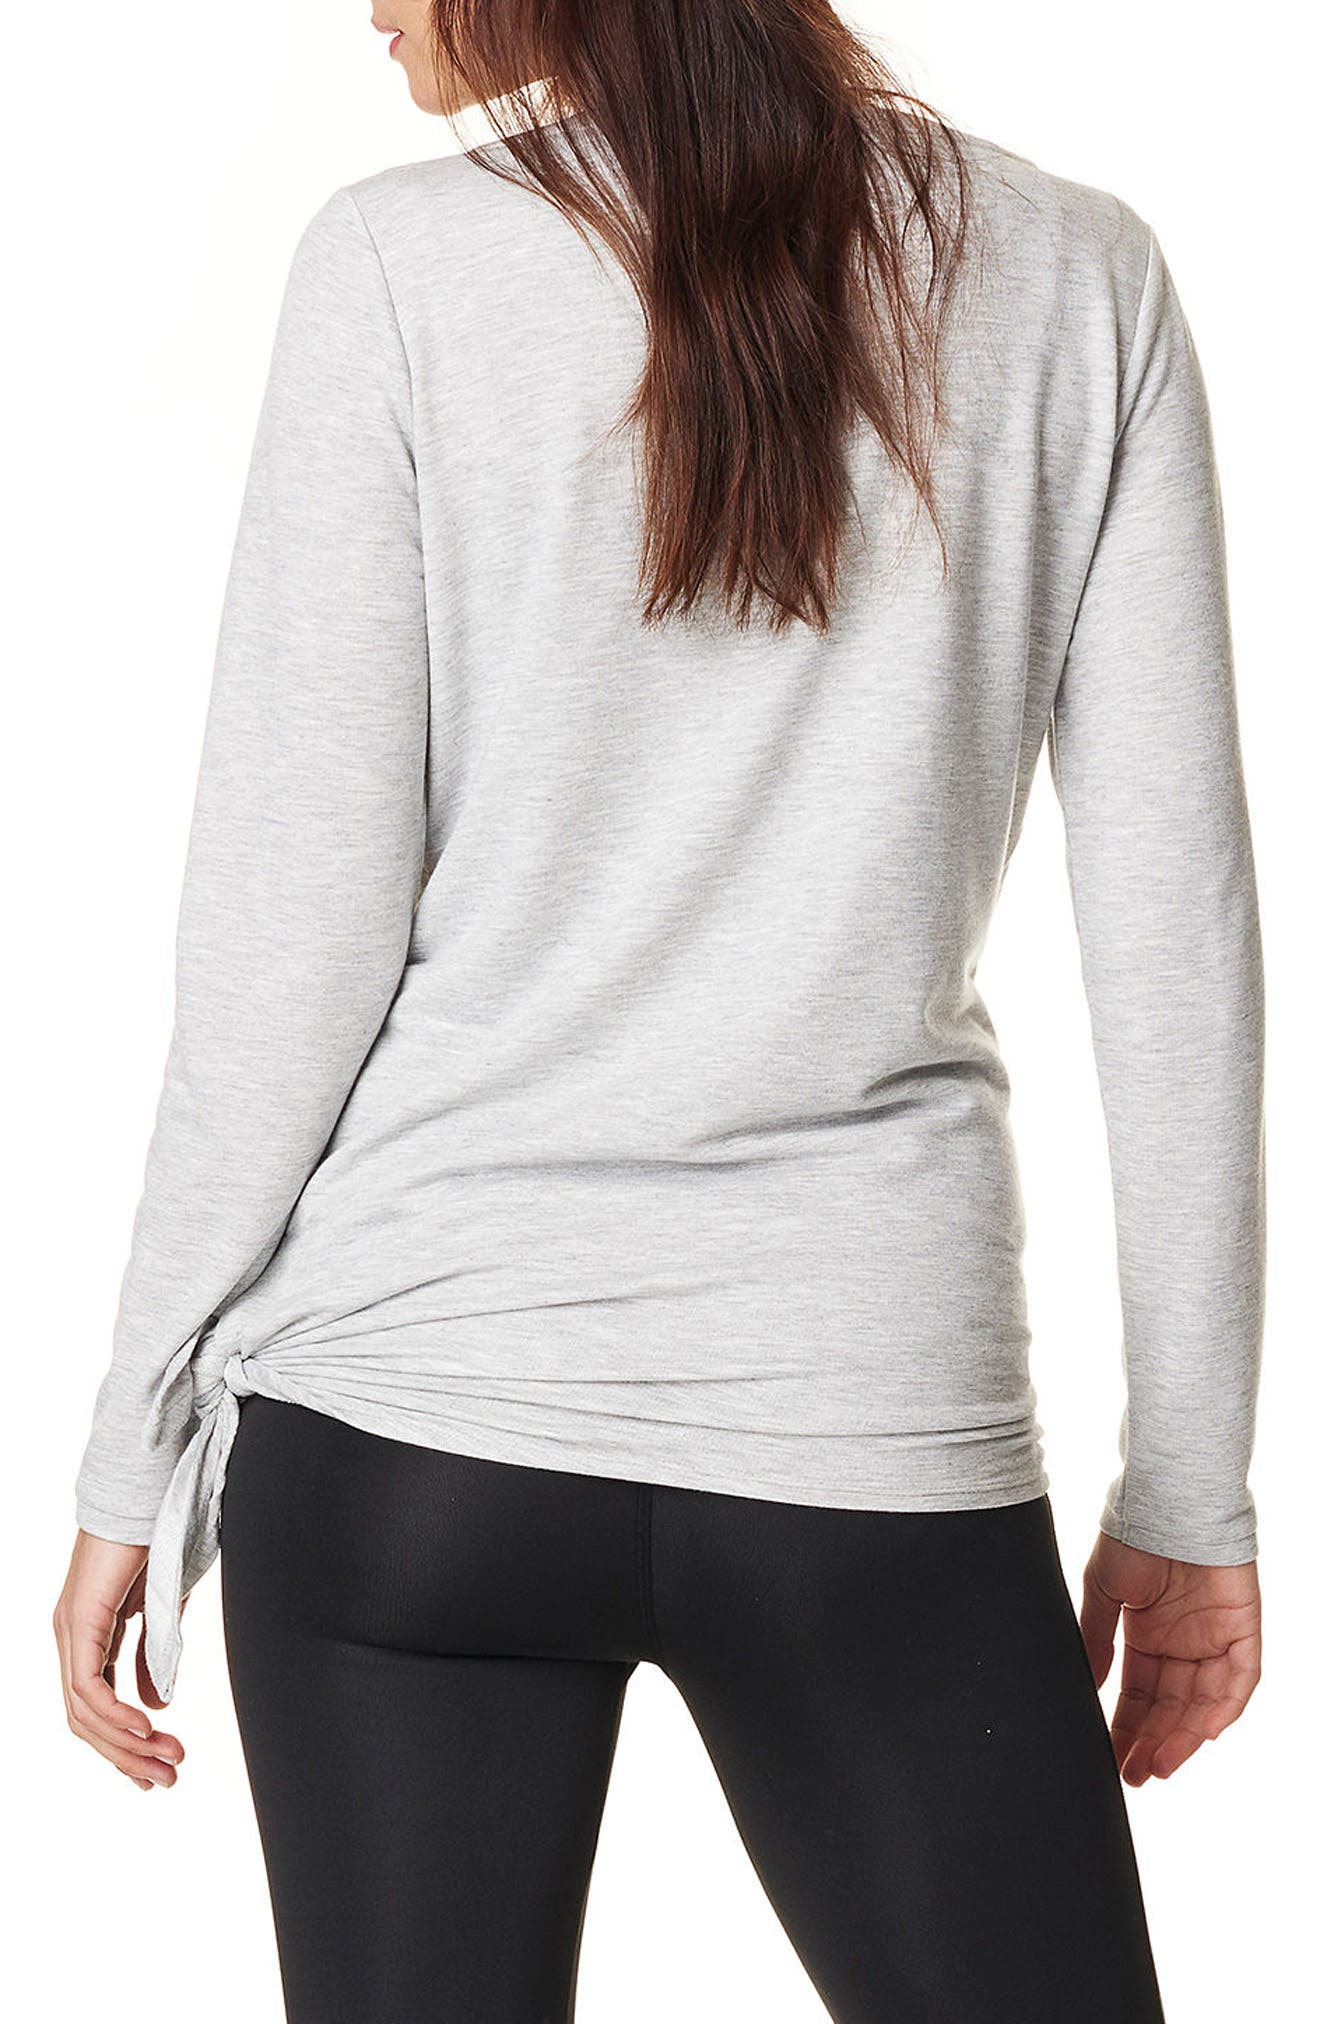 Heather Athletic Maternity Top,                             Alternate thumbnail 2, color,                             GREY MELANGE